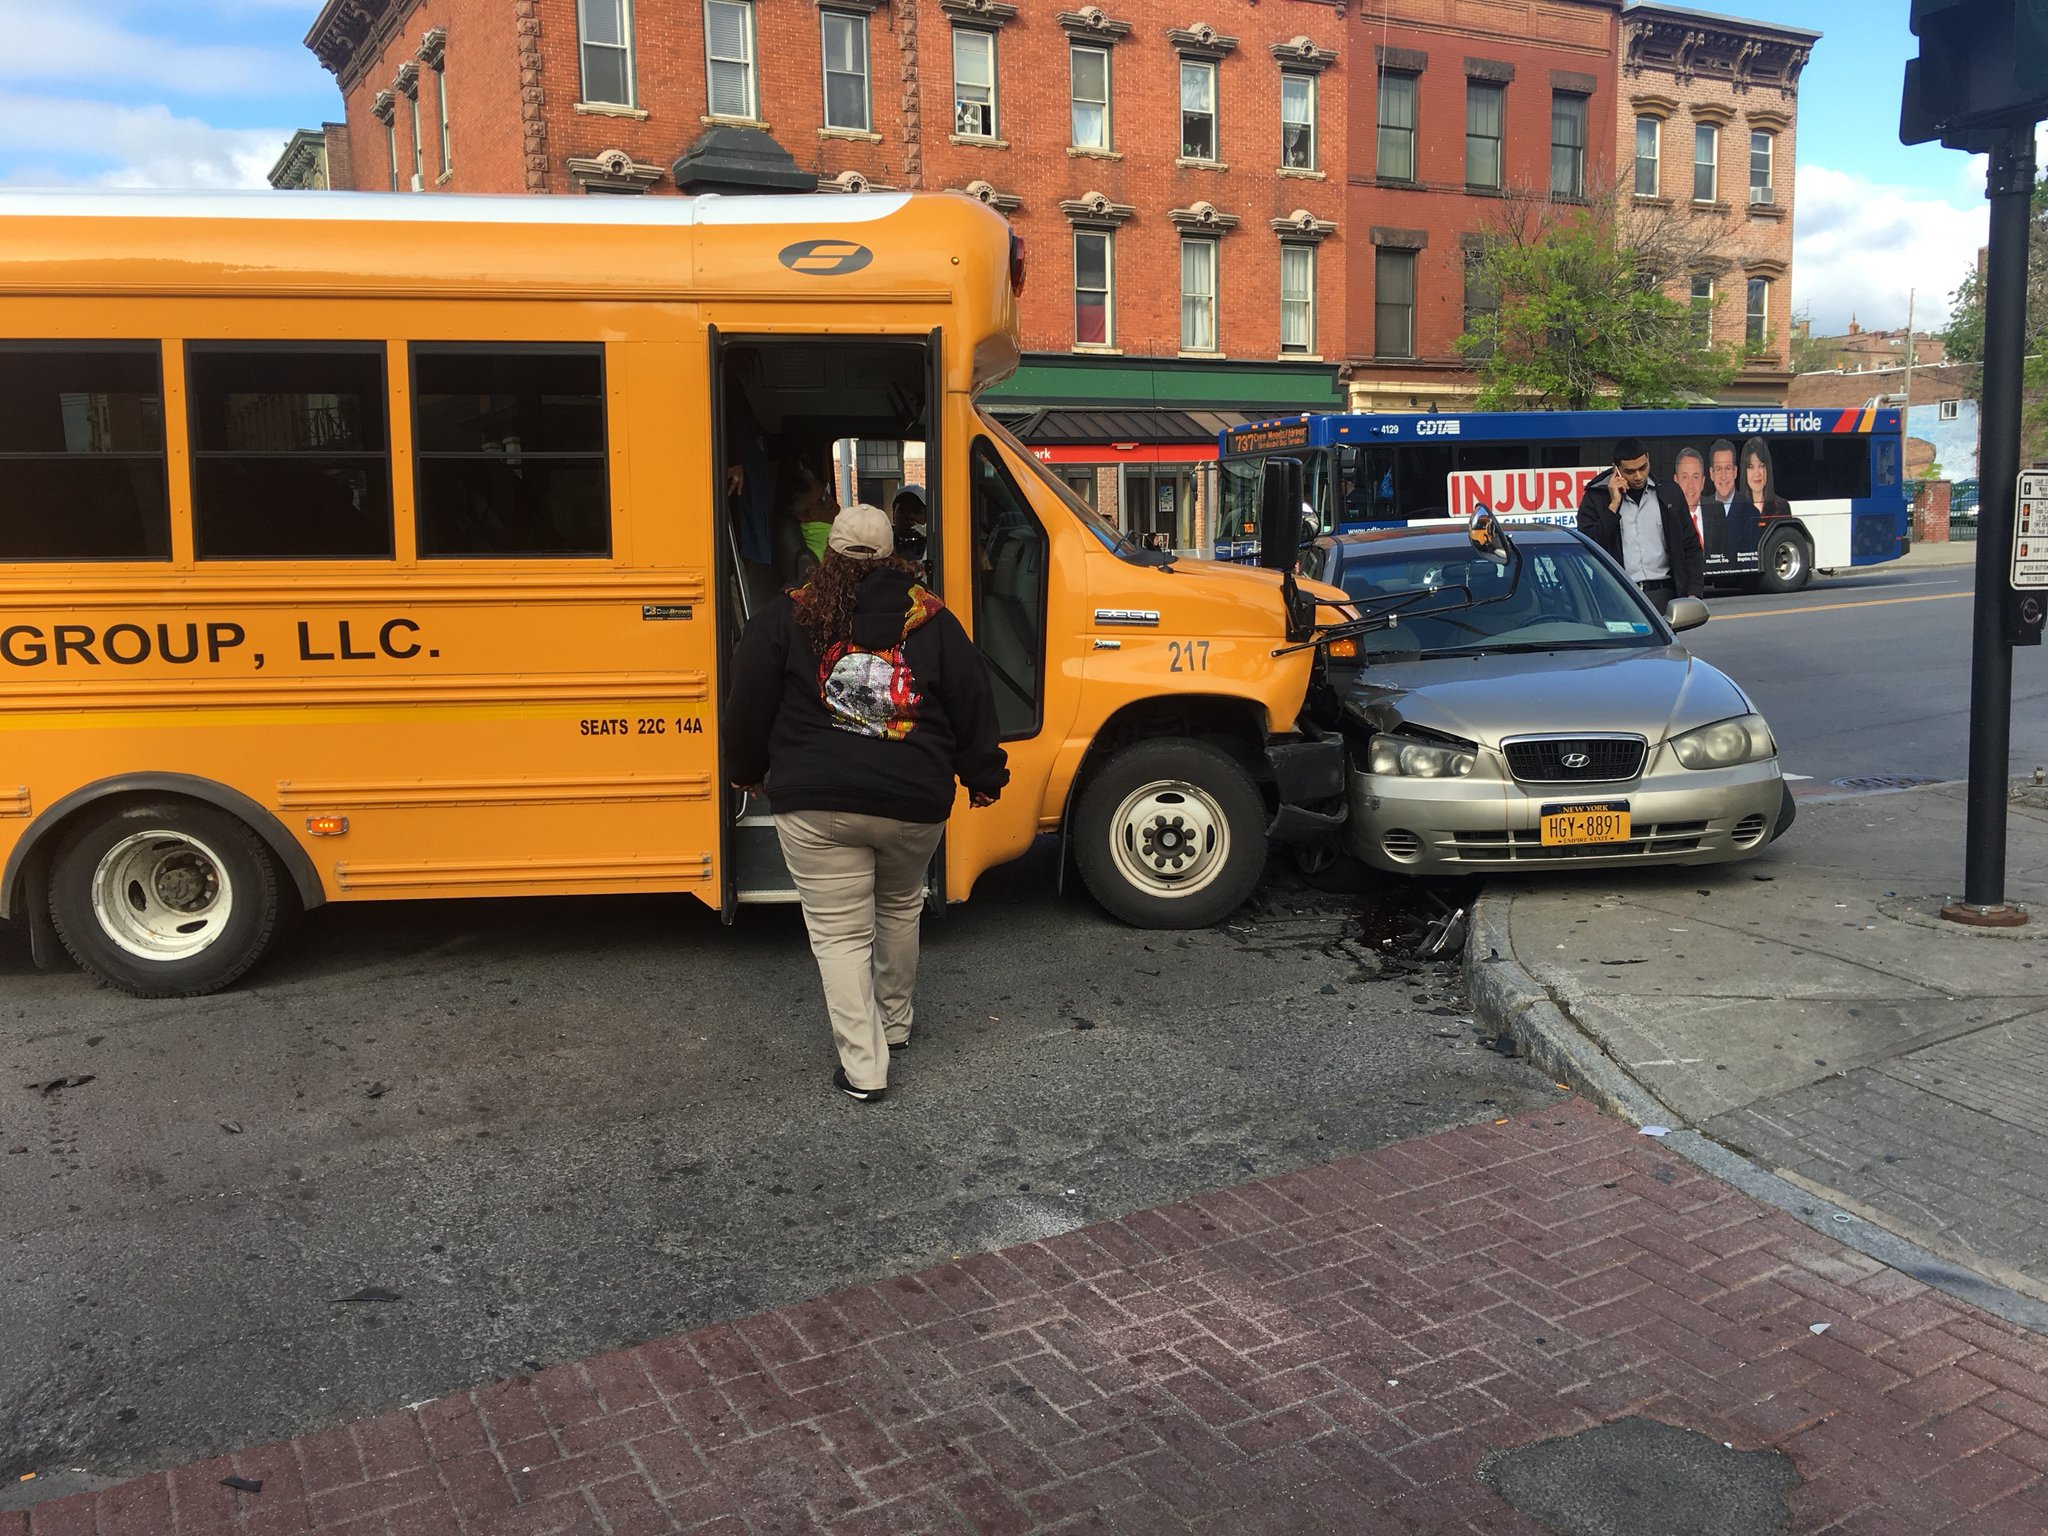 Crews were on the scene of a crash involving a school bus and a car  (Photo with permission @StephenViking)